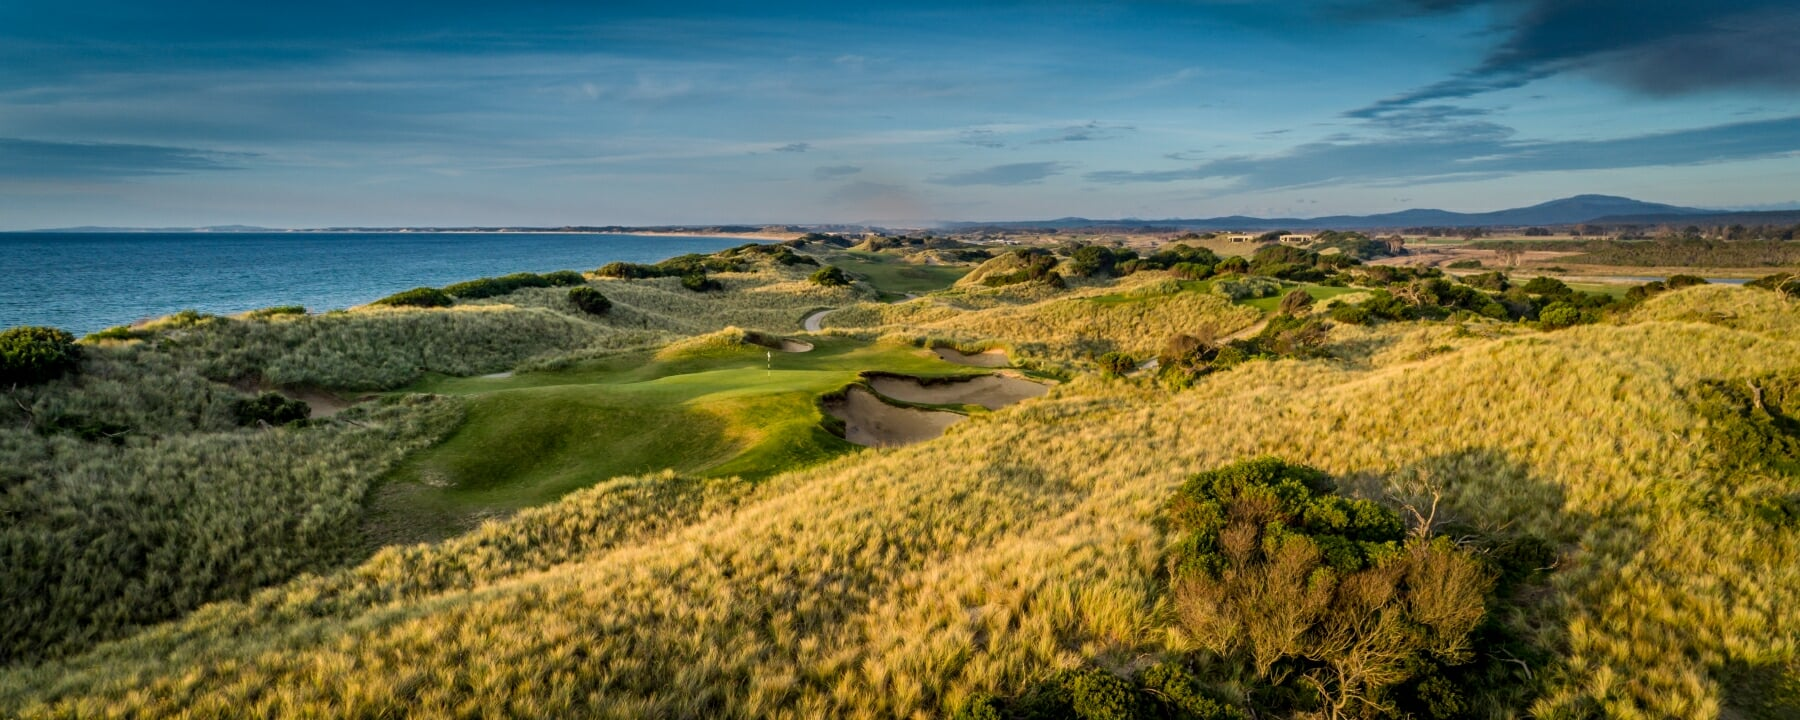 Panoramic view of the fifth fairway at Barnbougle Dunes golf links